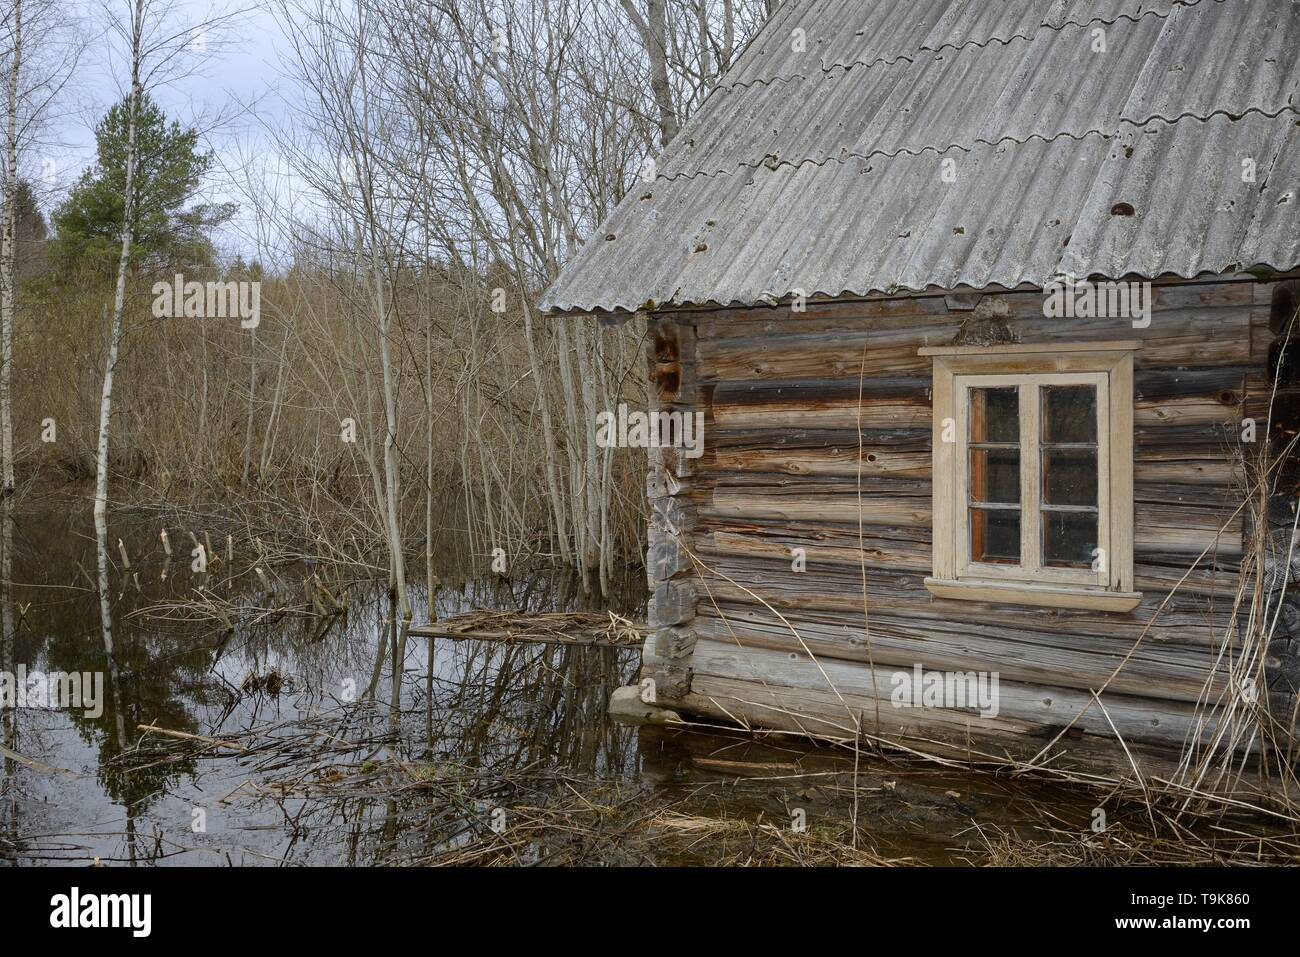 Derelict, abandoned cottage in woodland flooded by Eurasian beavers (Castor fiber) damming a river nearby, with several saplings recently cut by them  - Stock Image